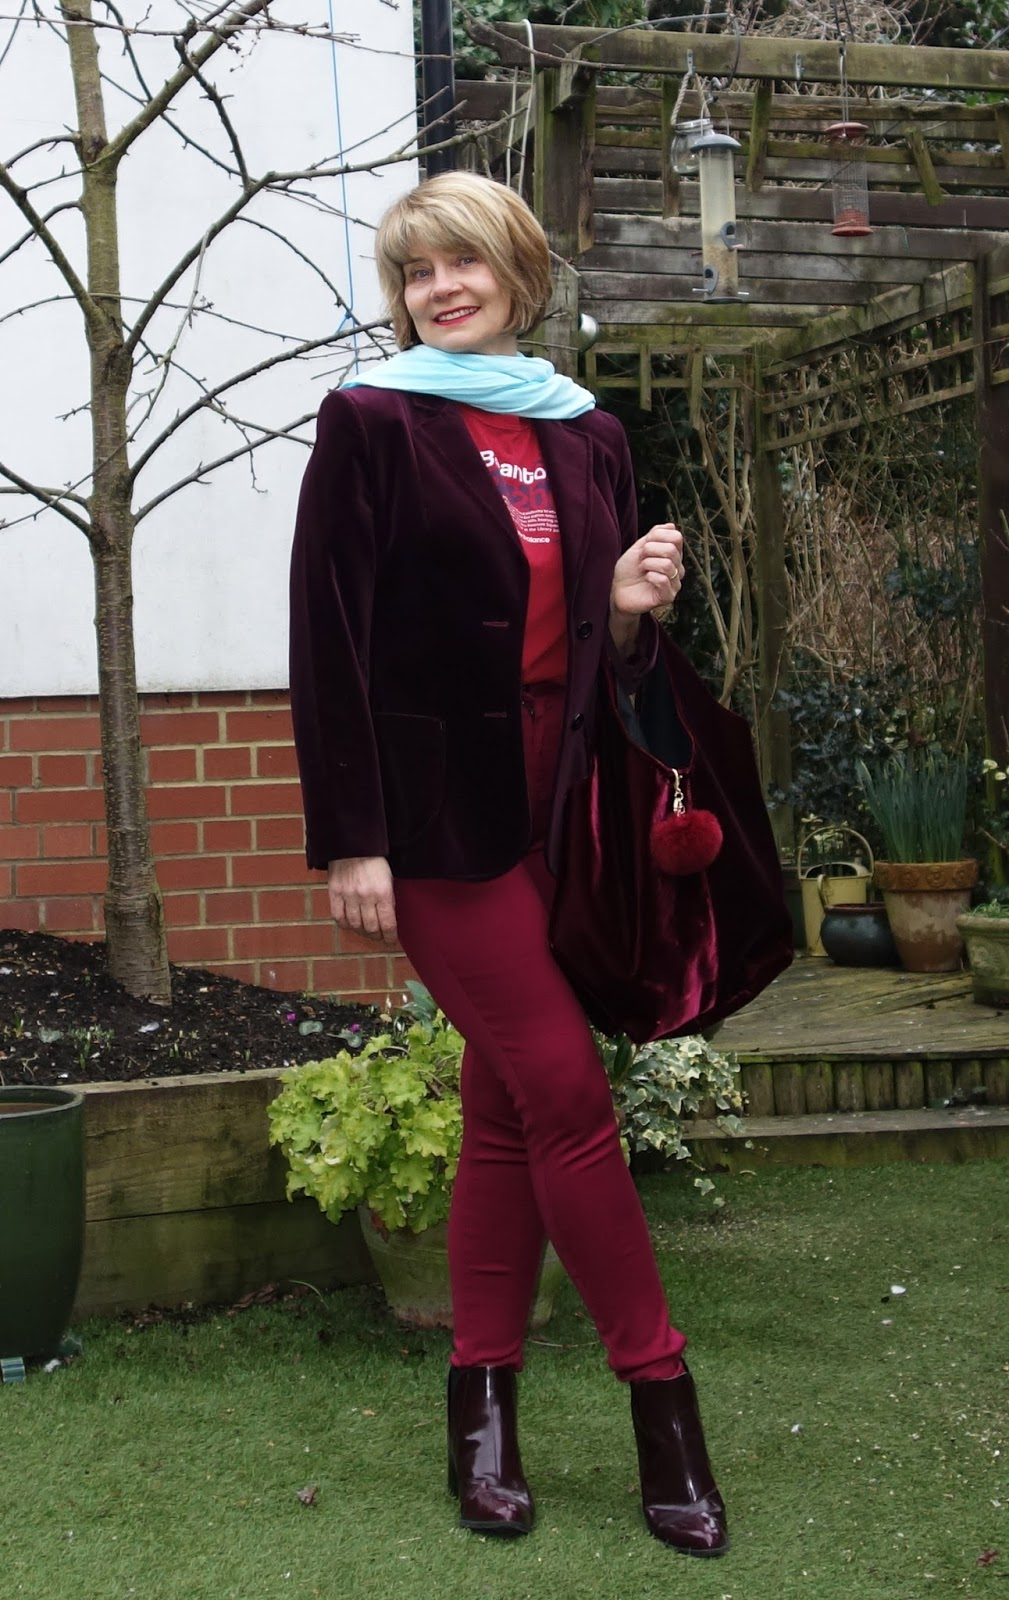 Image showing burgundy velvet jacket styled for casual wear